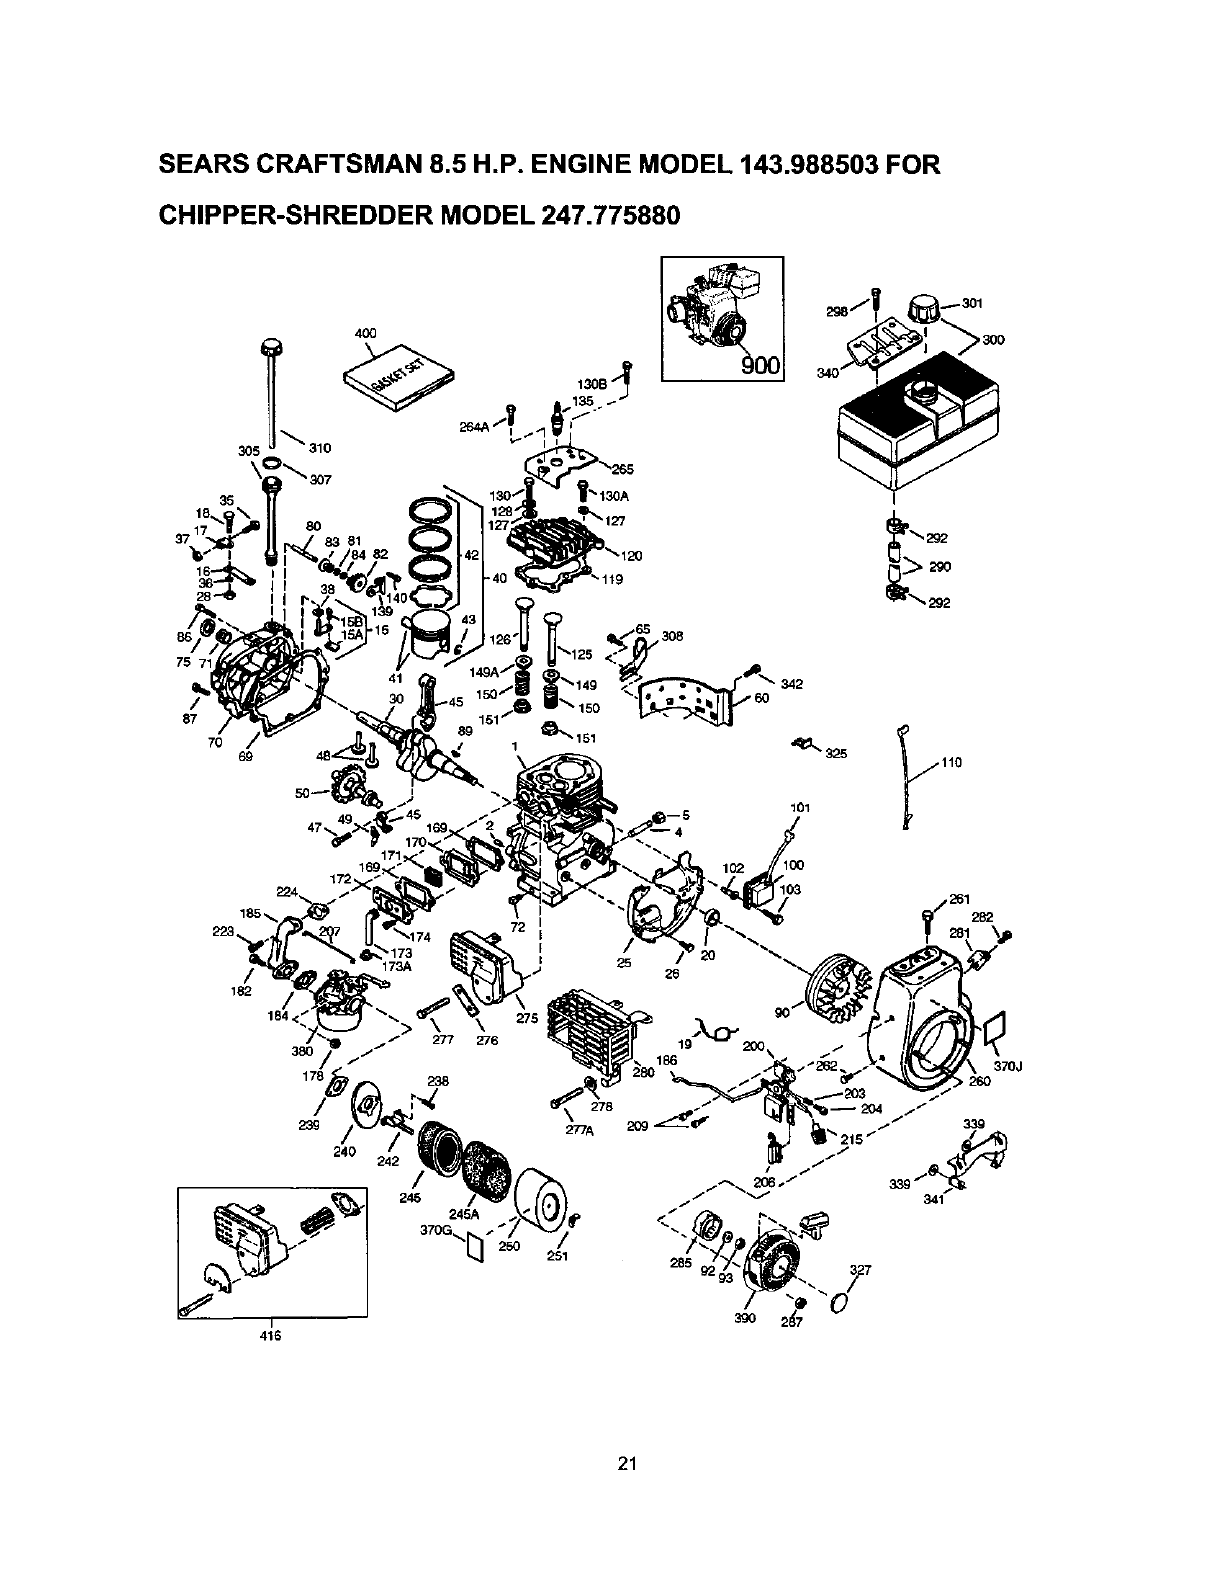 Page 21 of Craftsman Chipper 247.77588O User Guide